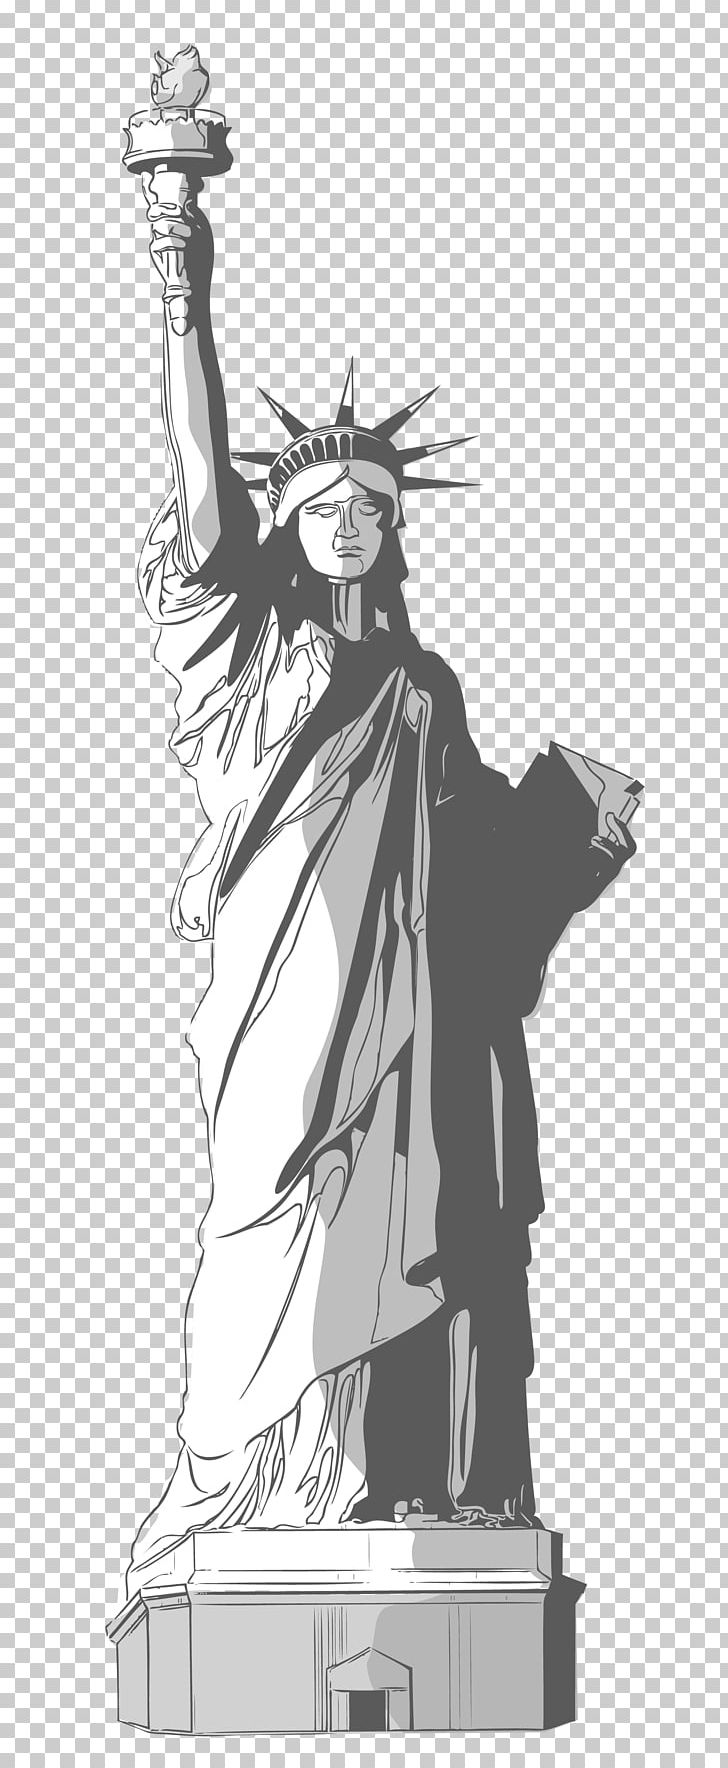 Statue Of Liberty Drawing PNG, Clipart, Anime, Art, Artwork, Black And White, Cartoon Free PNG Download